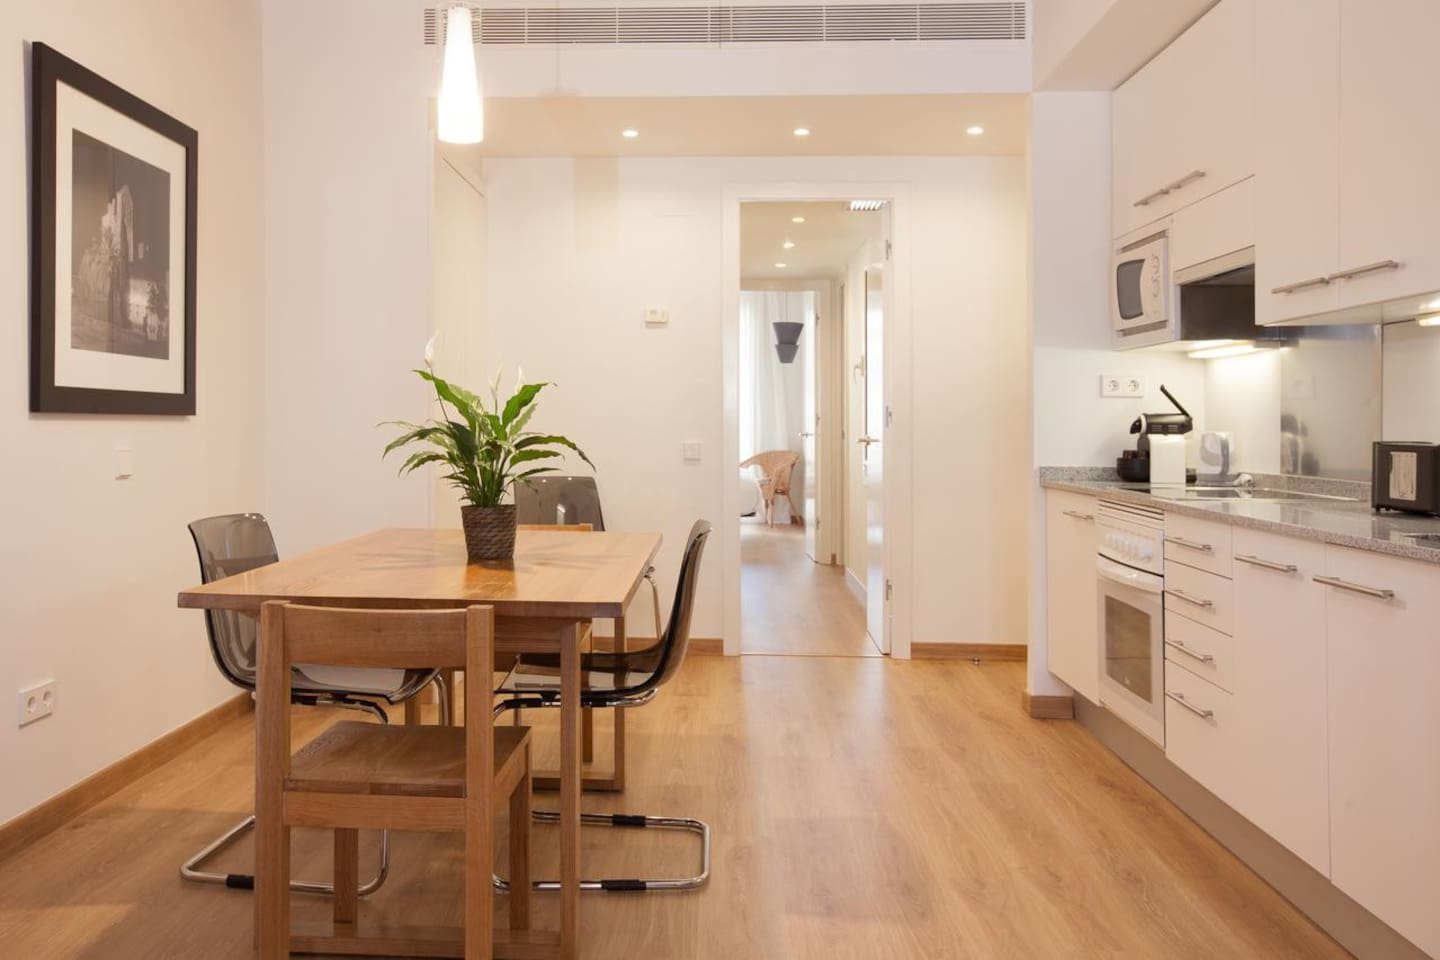 Dining table facing the open straight kitchen